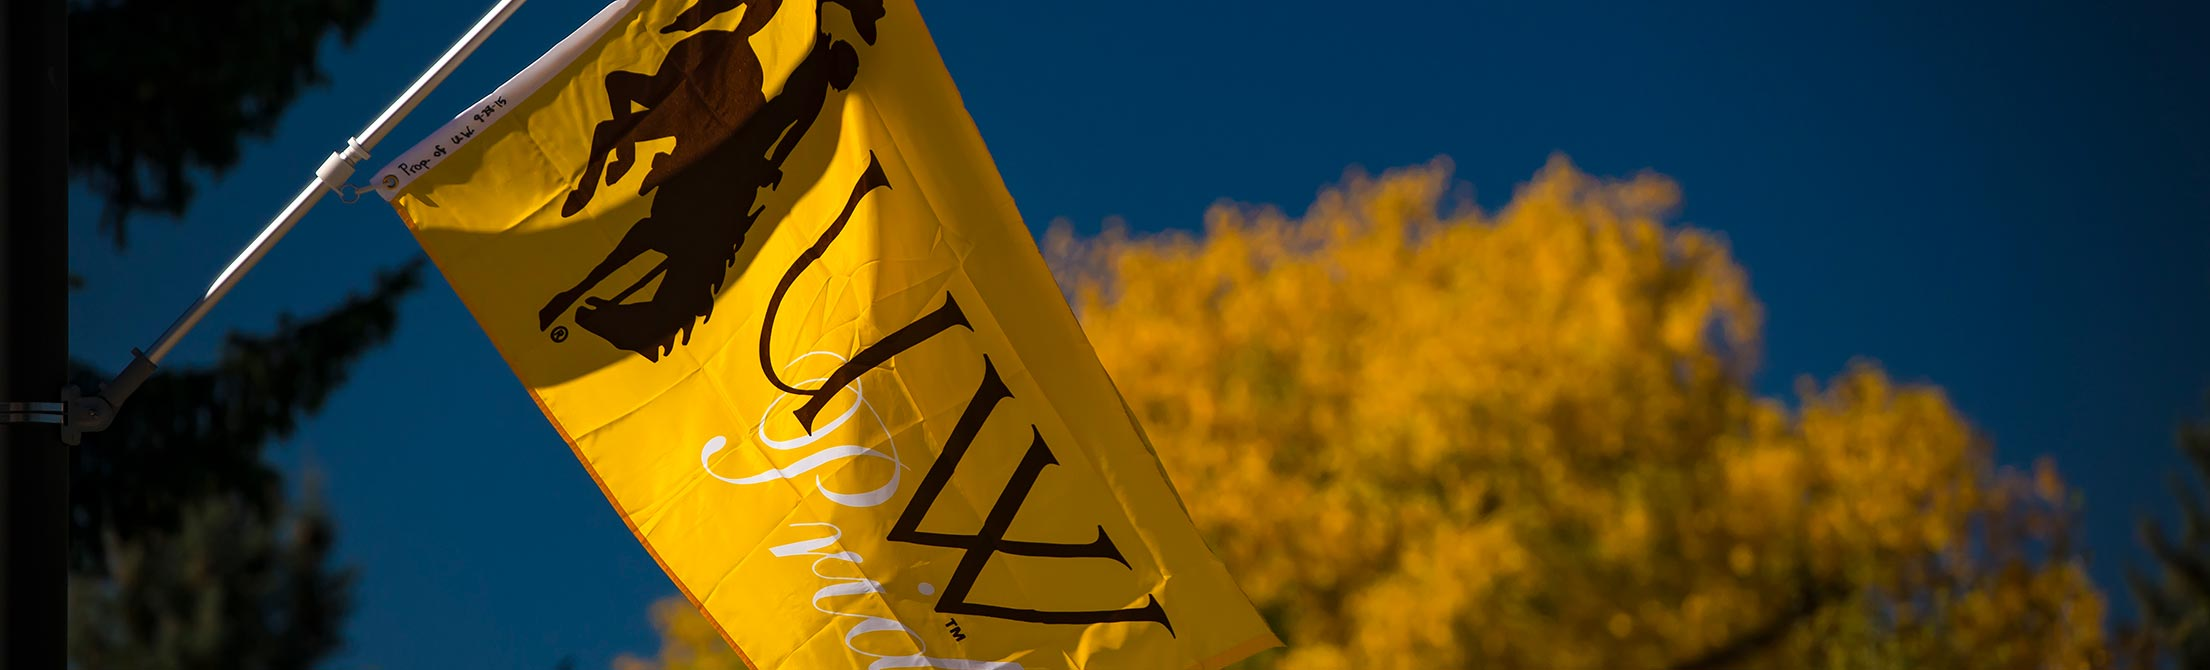 Image of UW flag